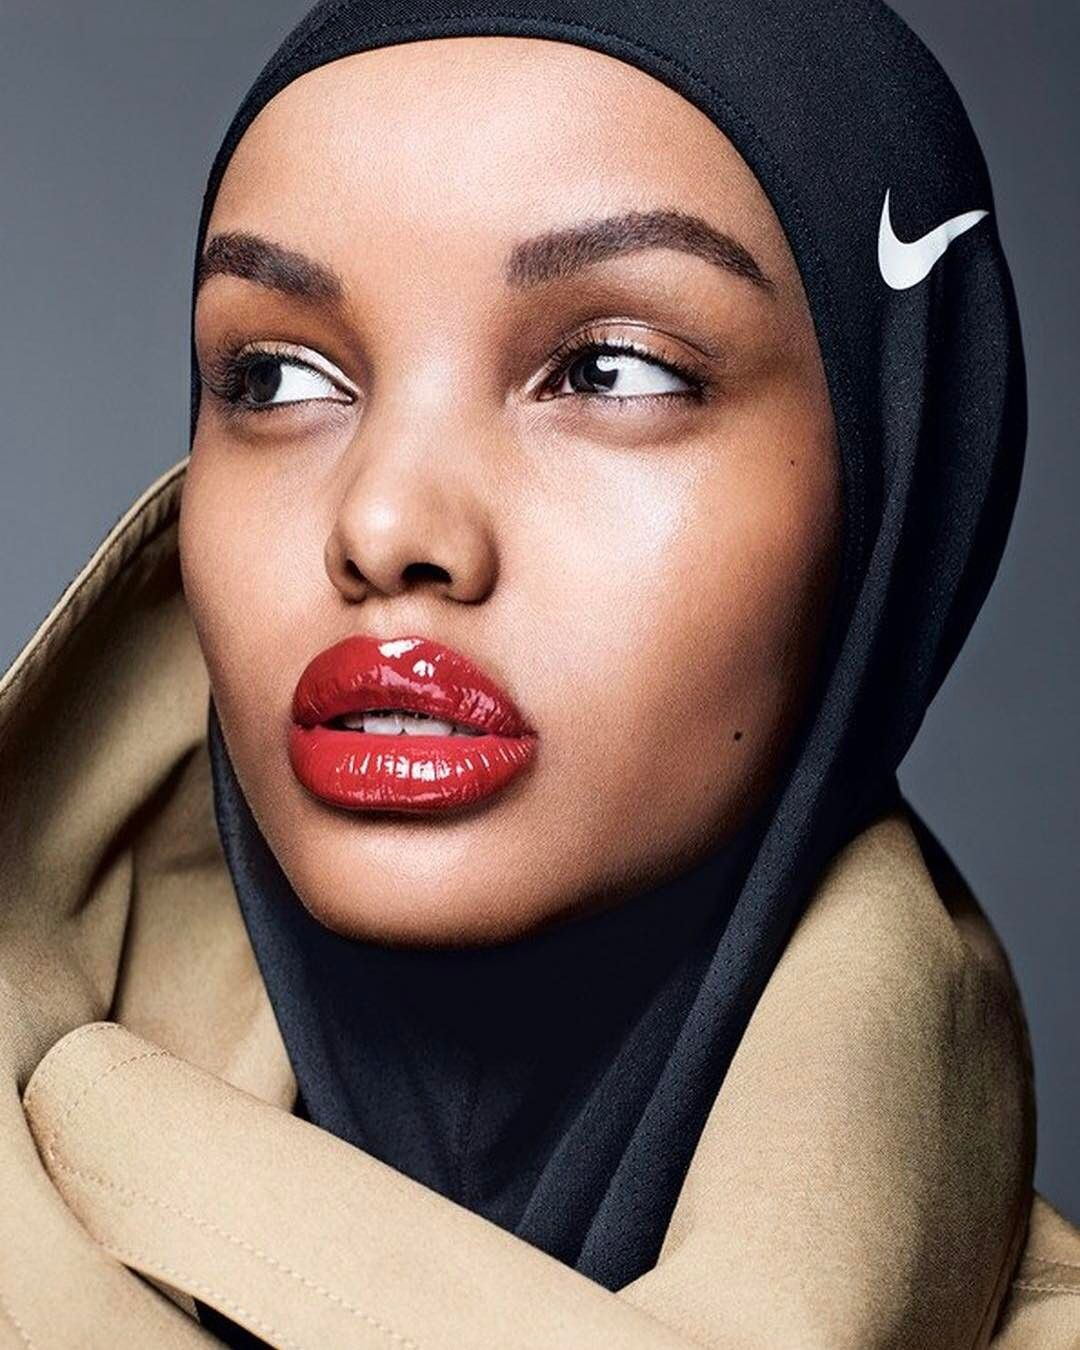 Here's Every Breathtaking Editorial Featuring Muslim Model